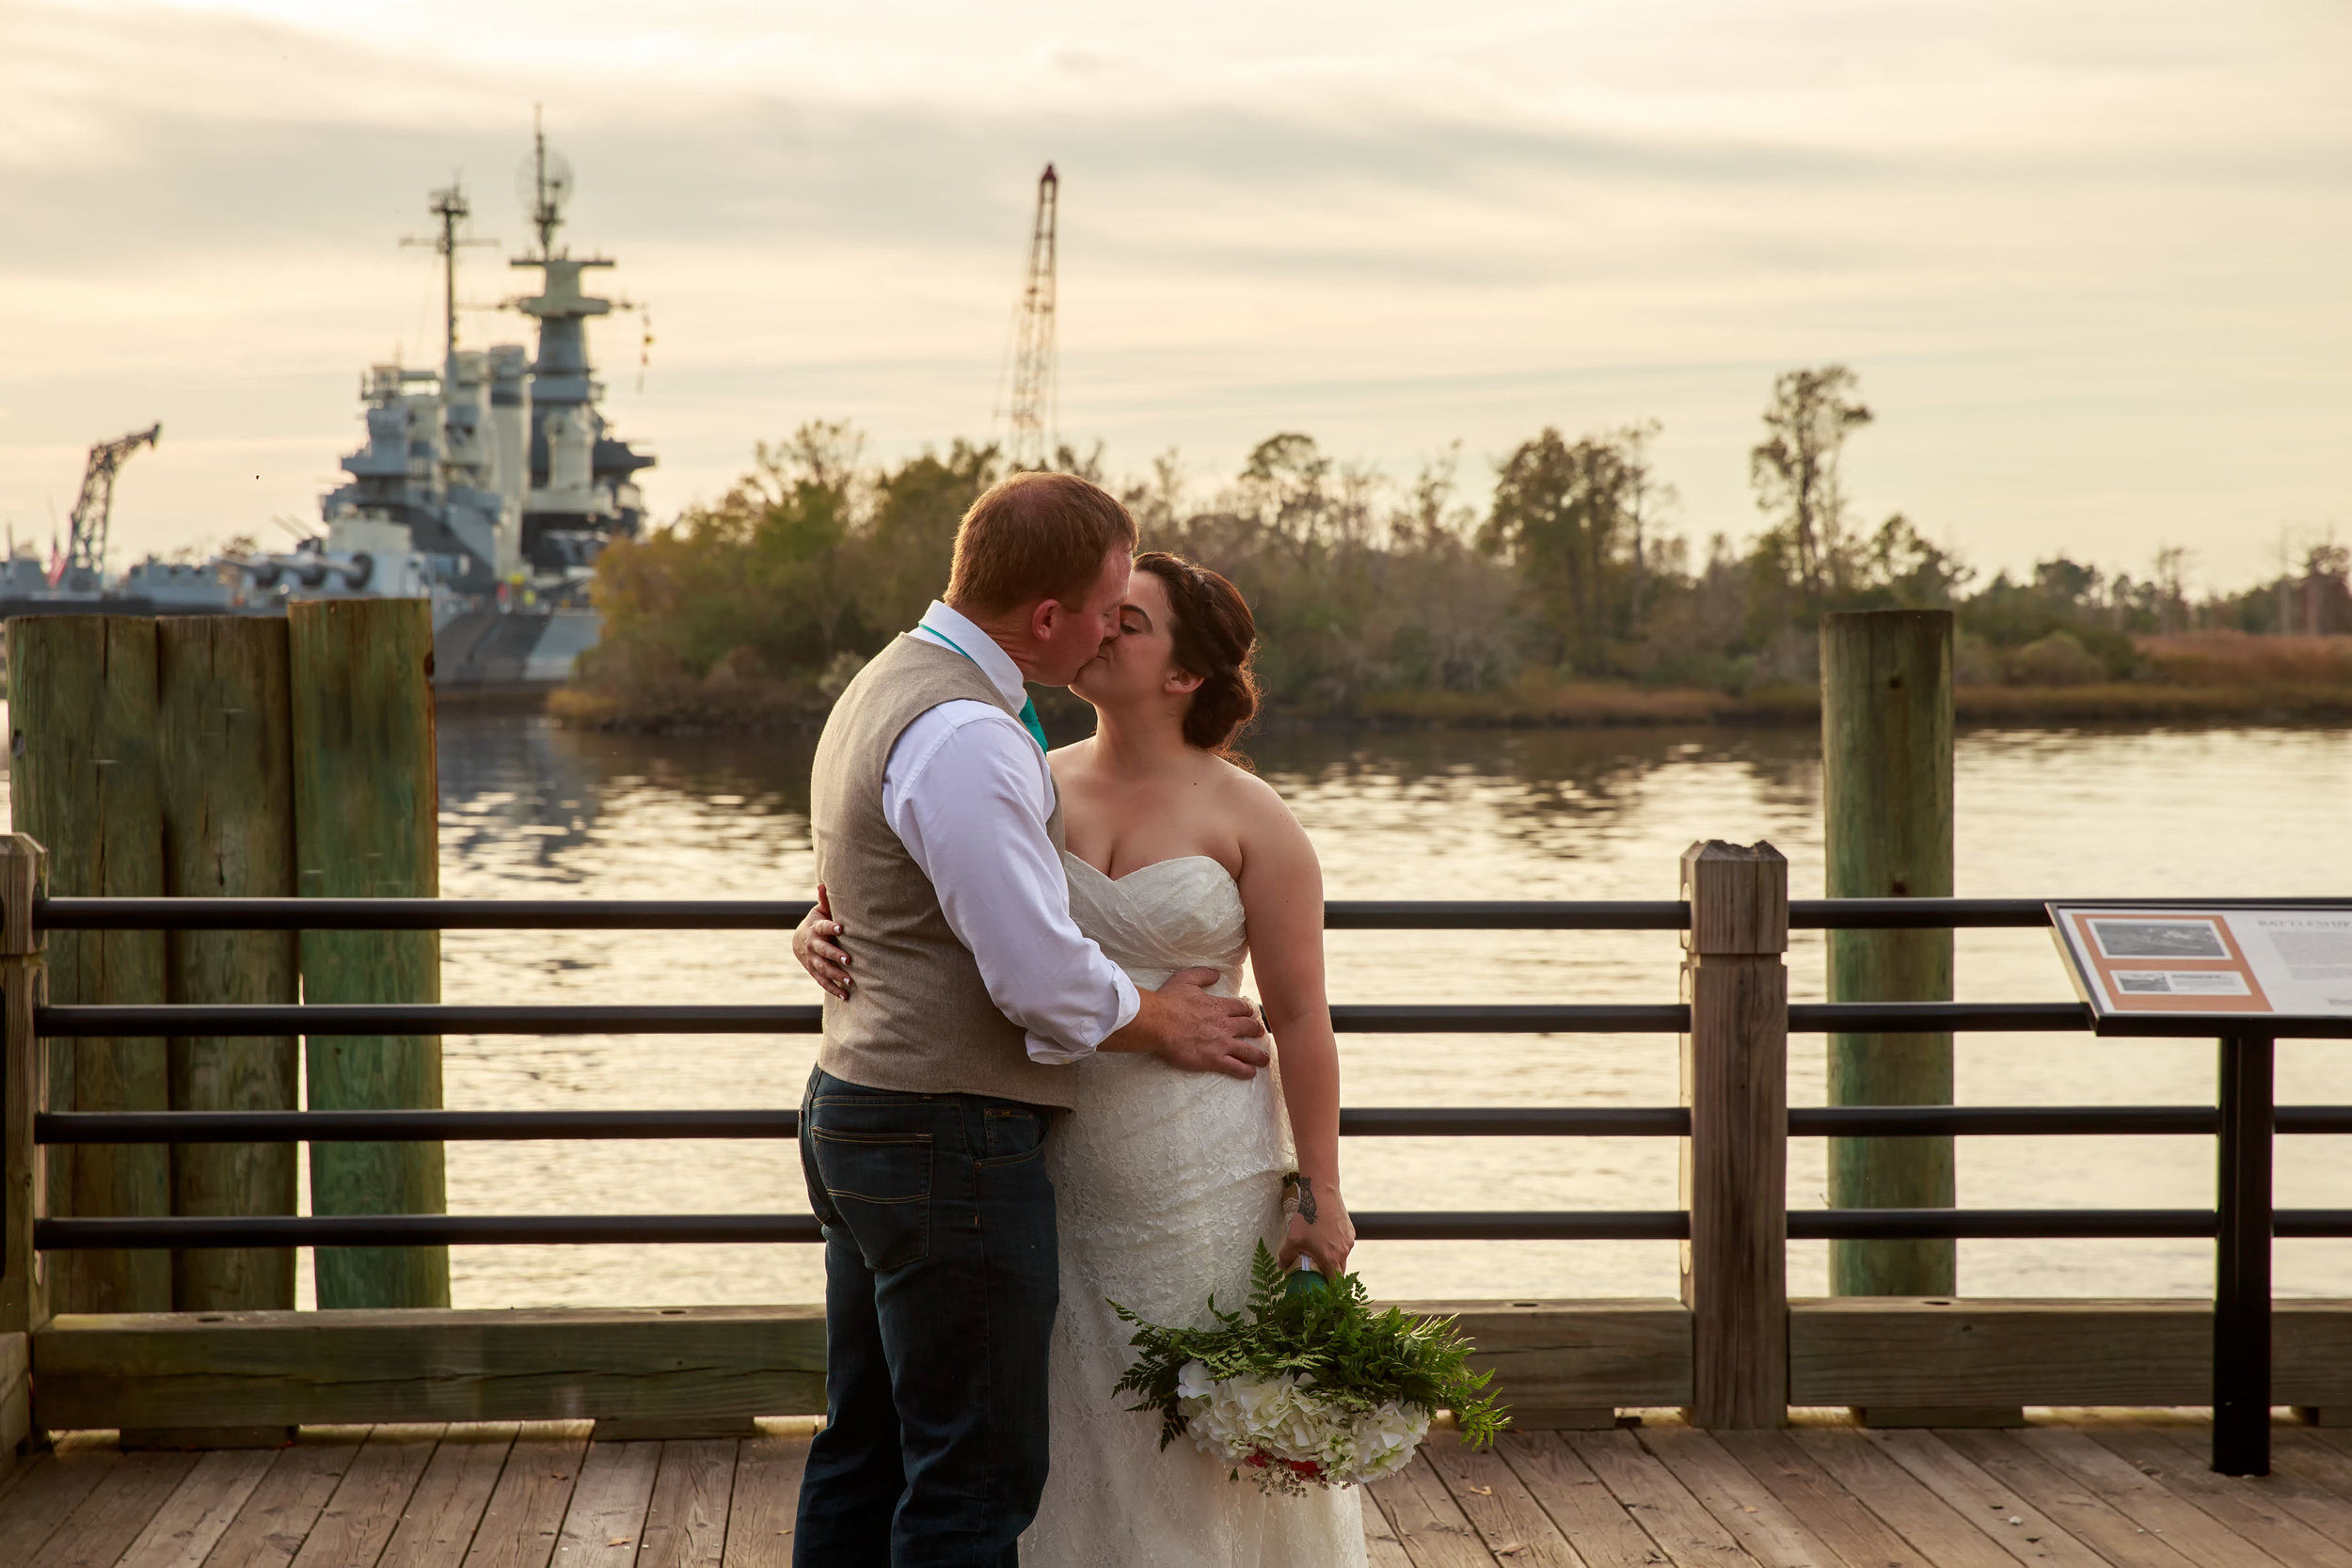 Wilmington_NC_Wedding_Photographer_Tiffany_Abruzzo_Photography_First_Look_8.jpg